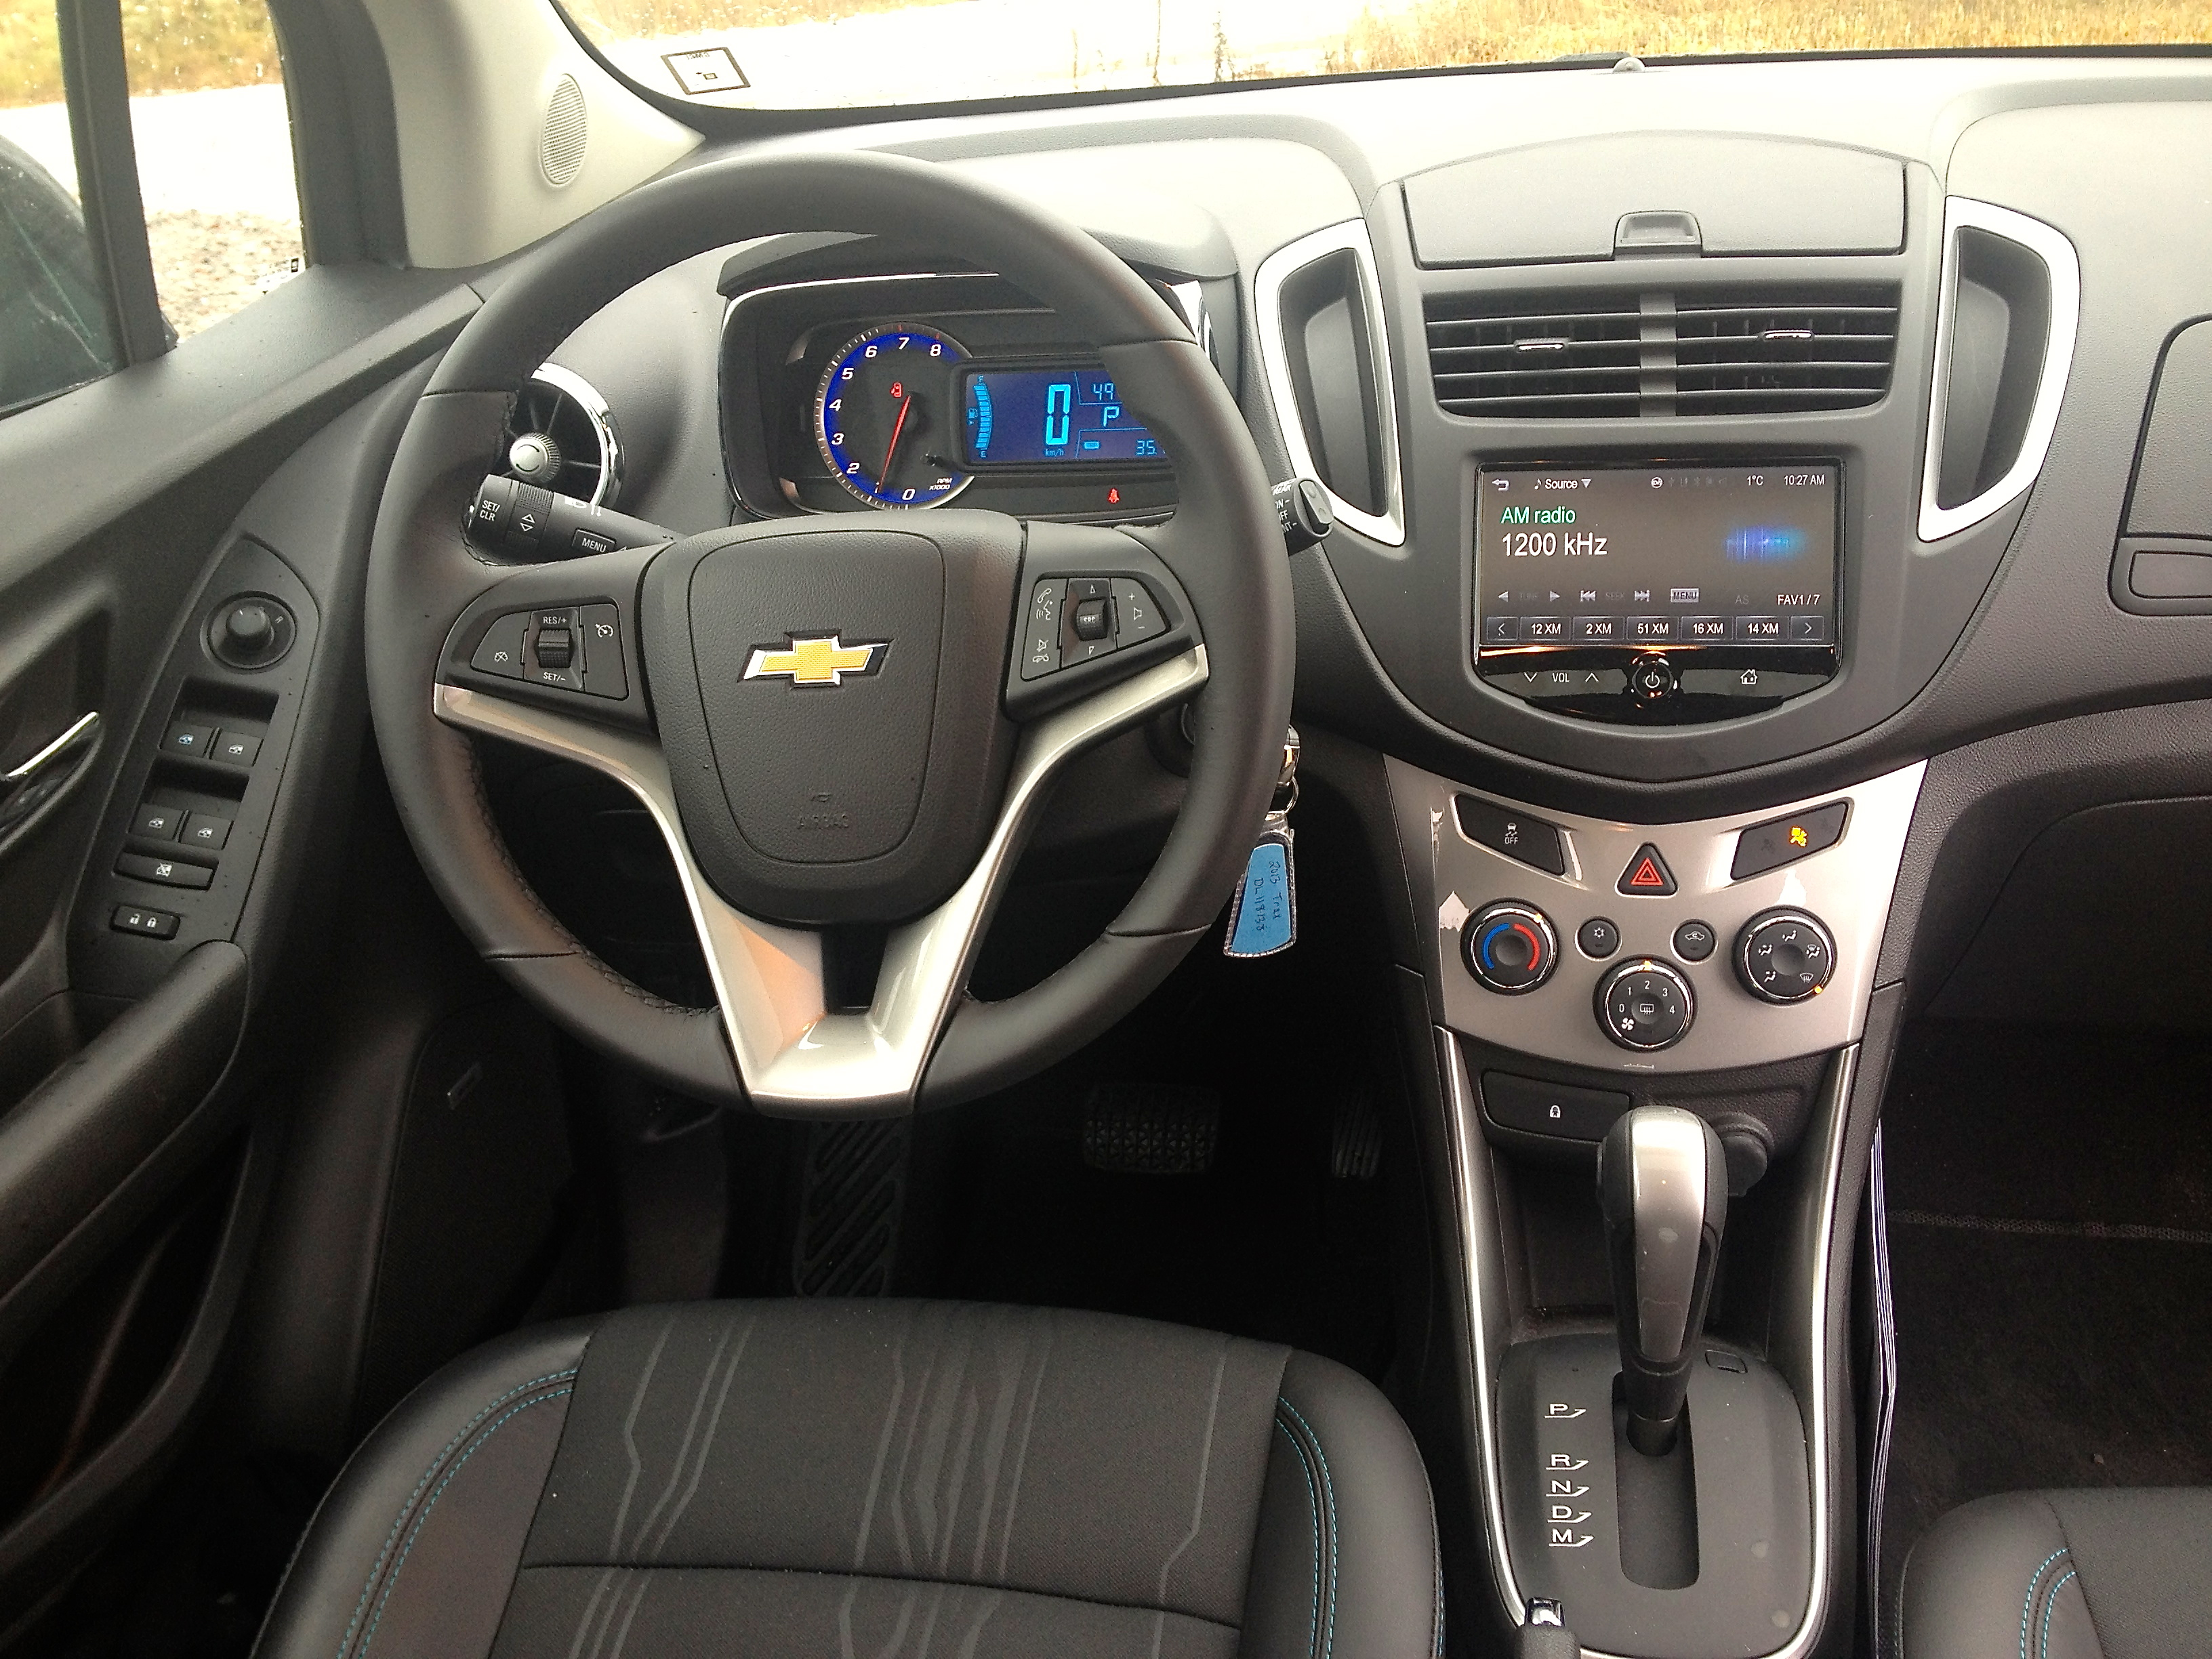 First drive 2013 chevrolet trax john leblancs straight six i have few qualms with the traxs interior design a tilt and telescopic steering wheel and supportive front seats deliver an excellent driving position sciox Image collections